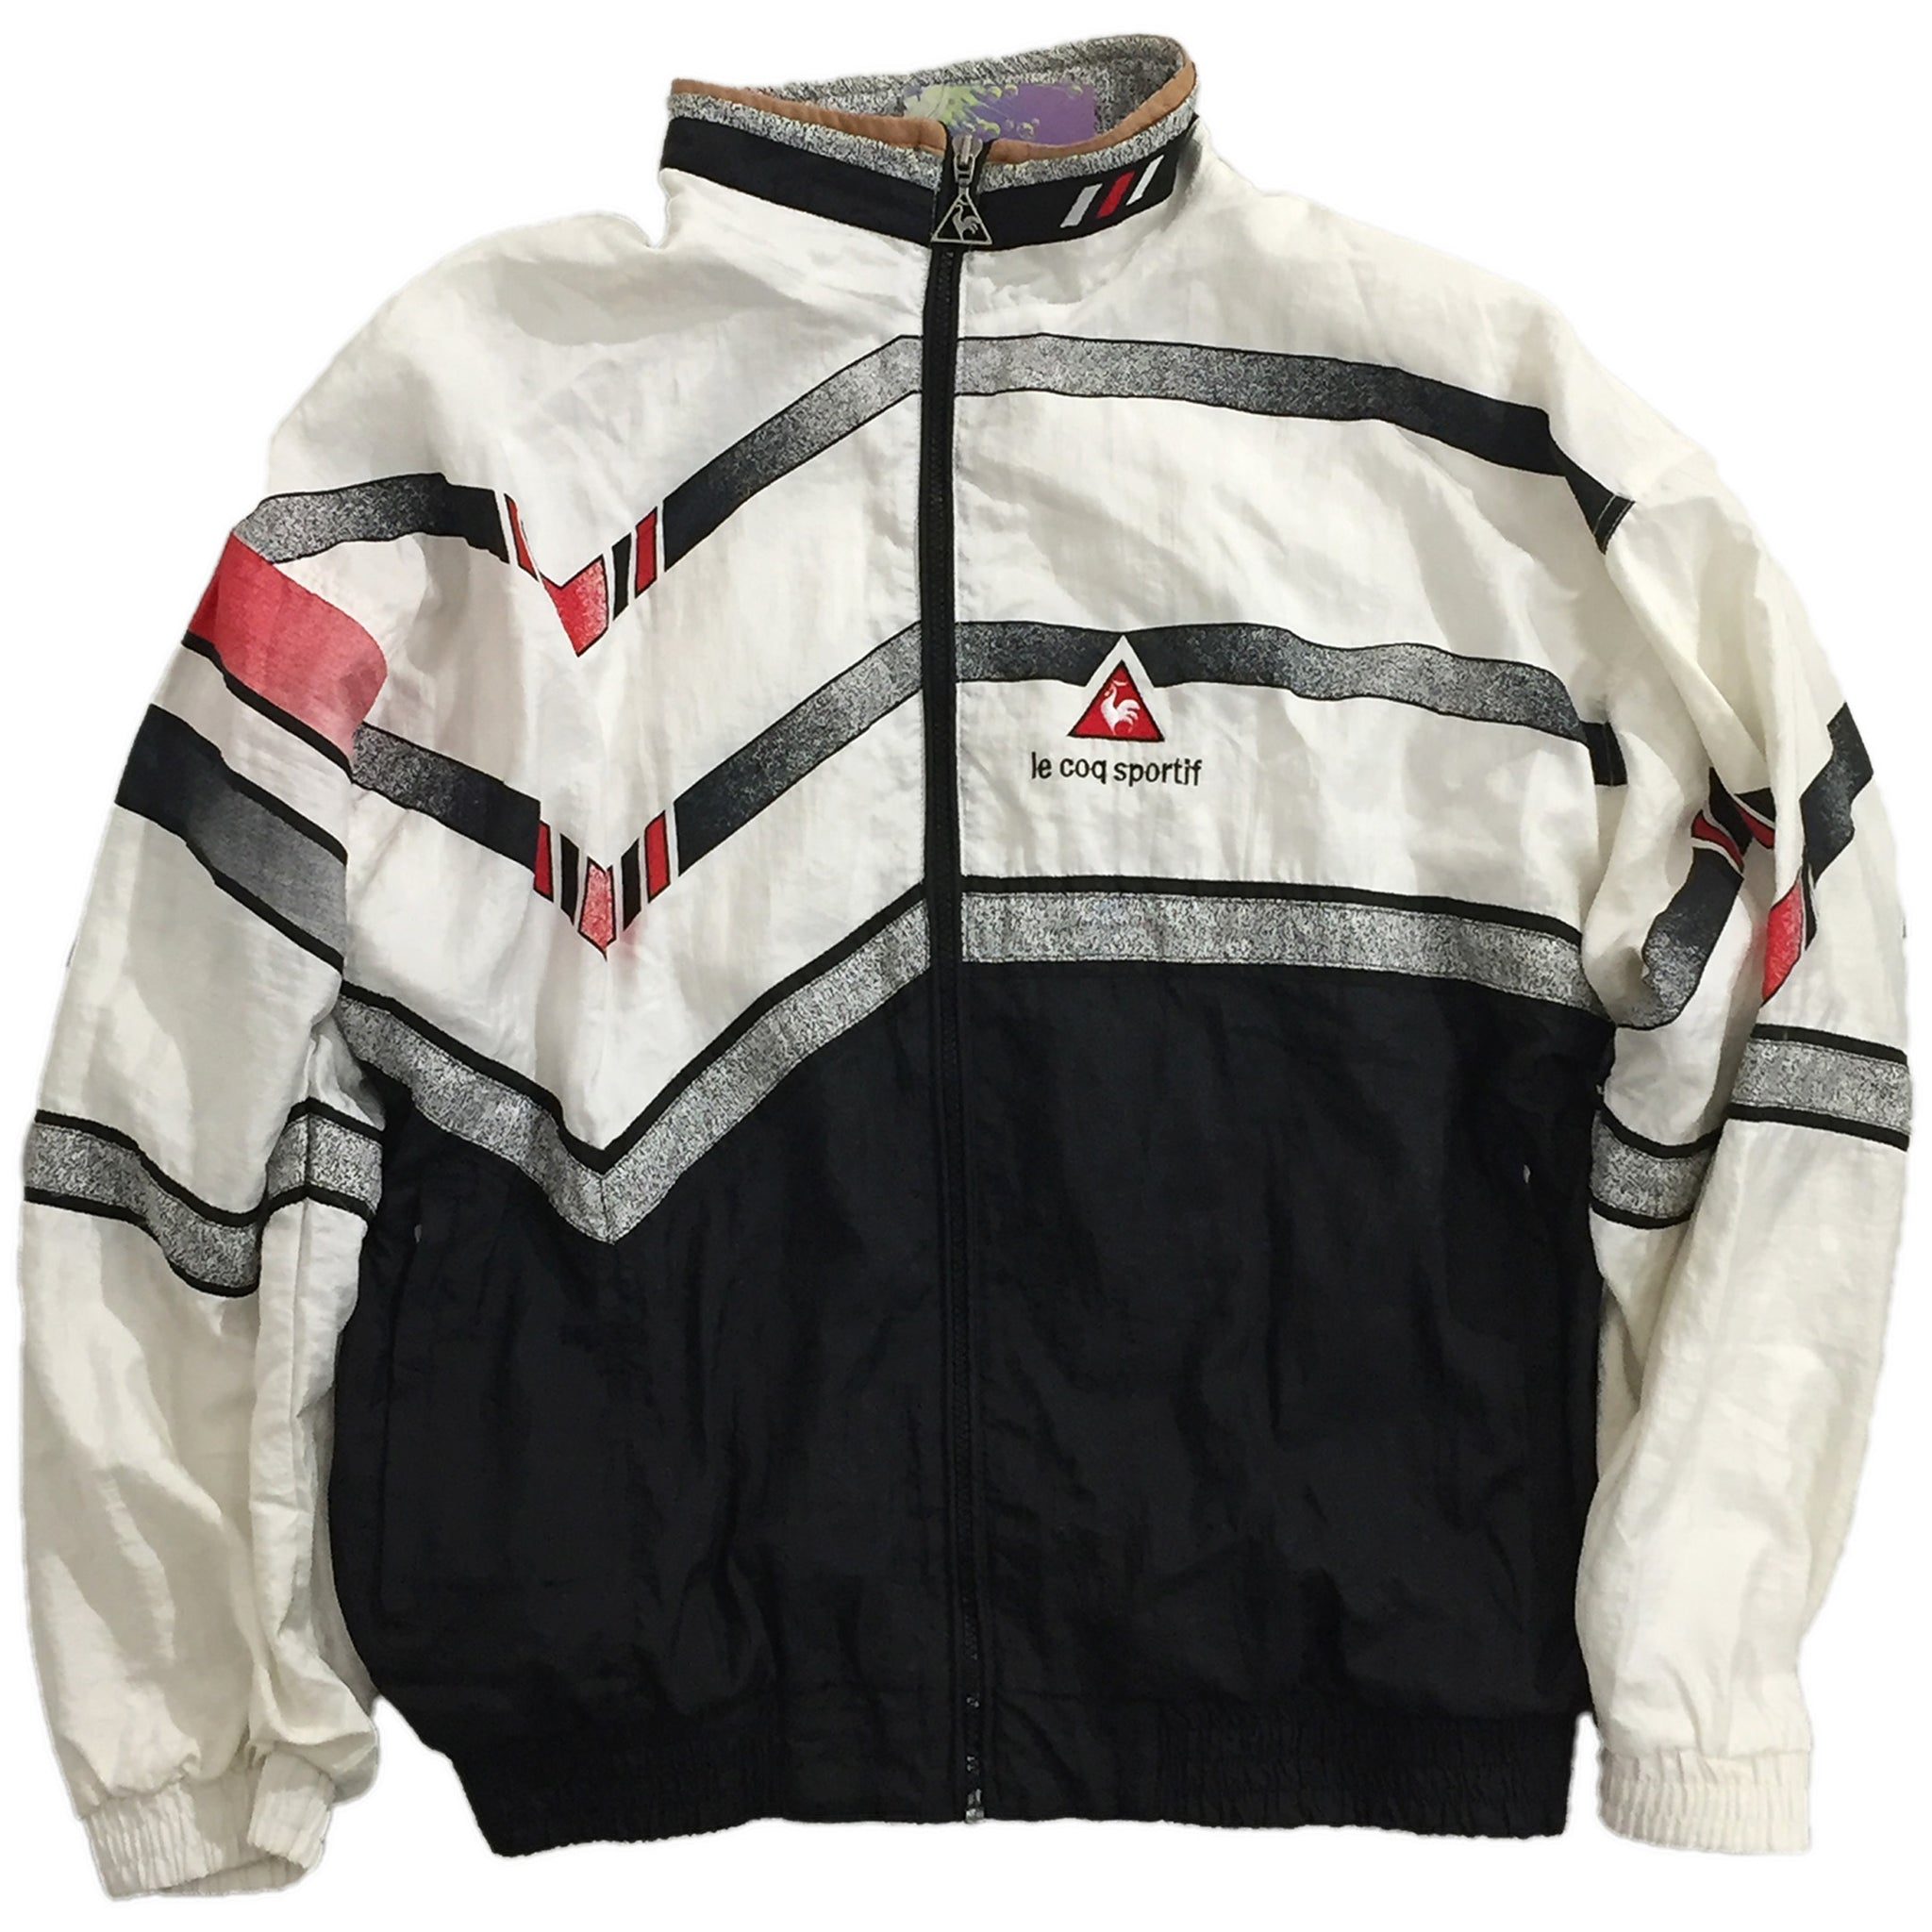 Le Coq Sportif White, Black, and Red Accent Track Jacket